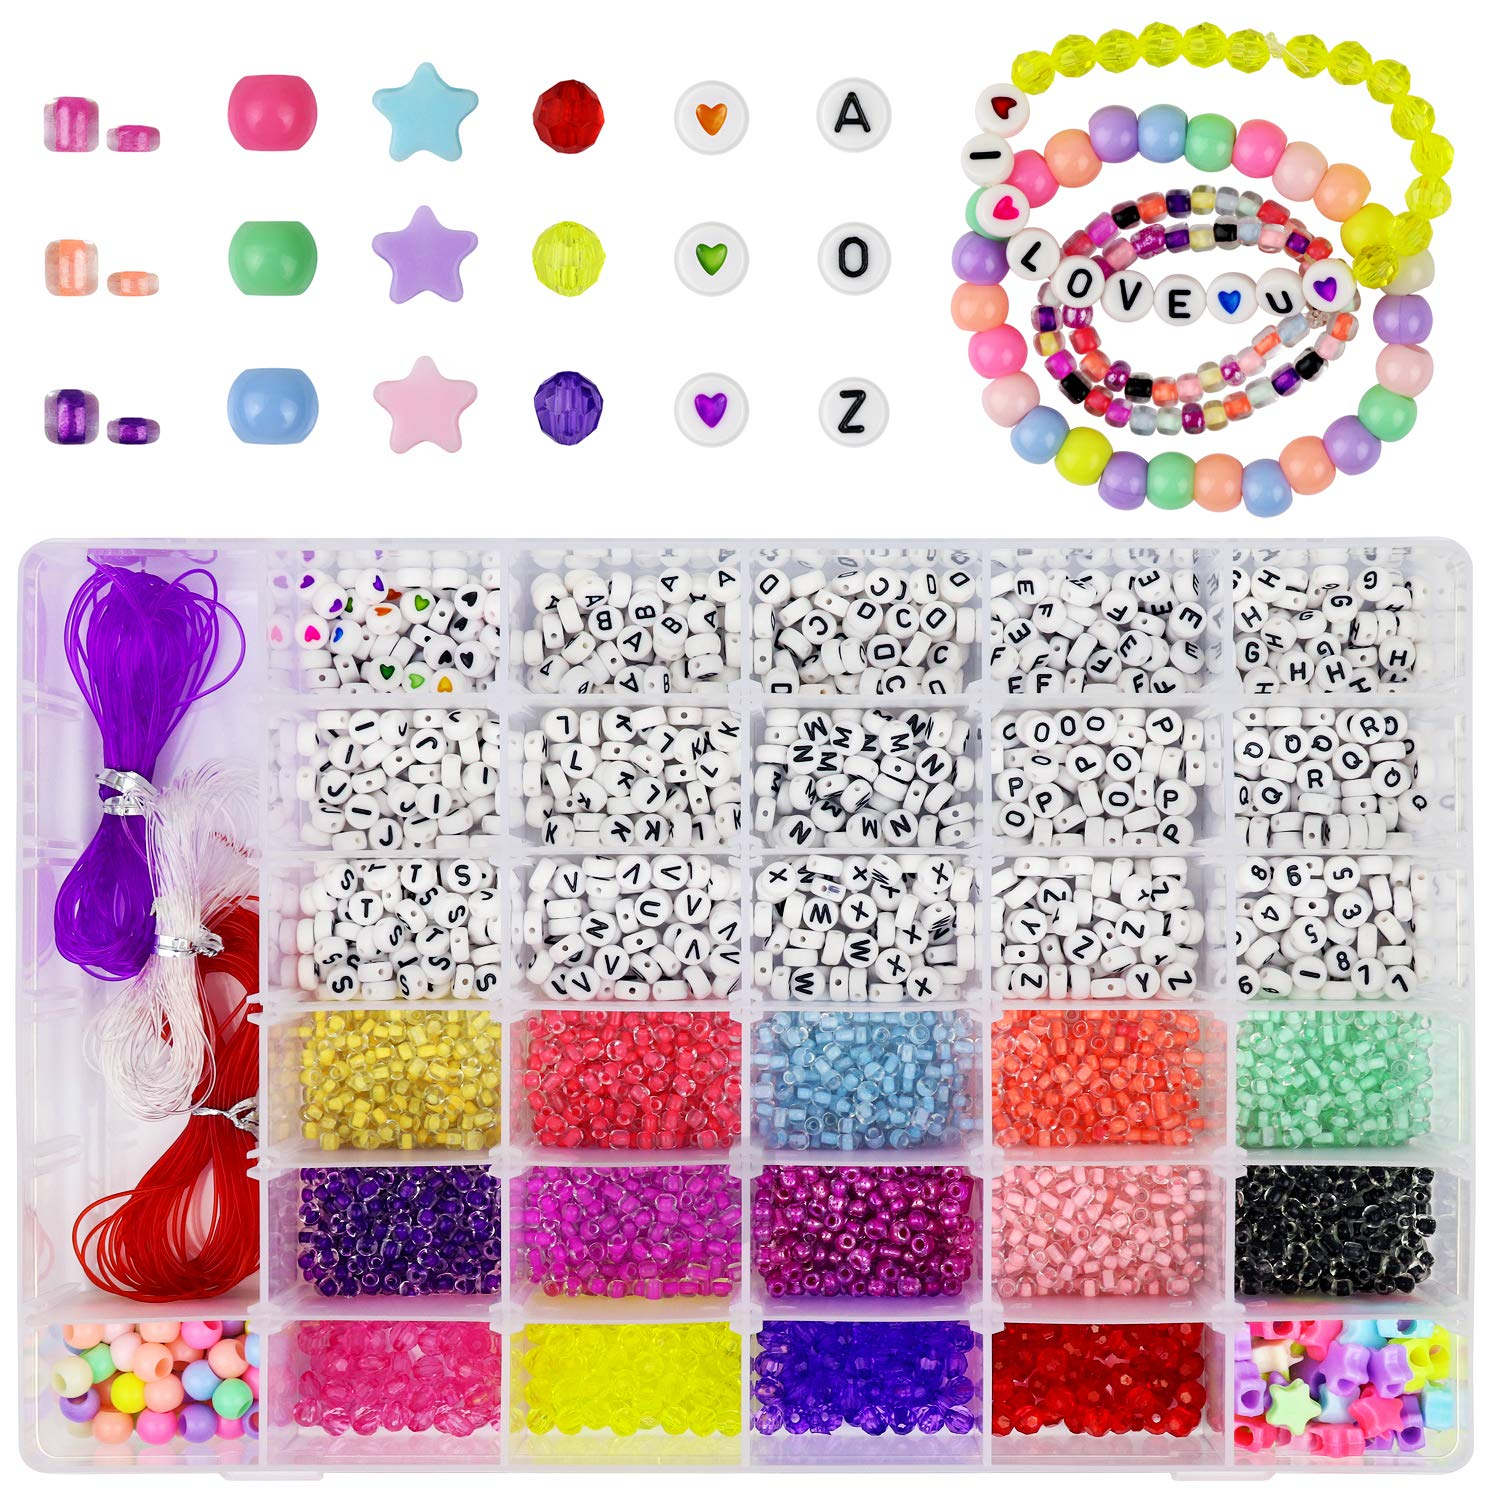 AK KYC 2000pcs Glass Seed Beads Acrylic Alphabet Letter Beads 4MM Complete Kit for Name Bracelets Necklaces Jewelry Making and Crafts Small Beads for Kids and Adults